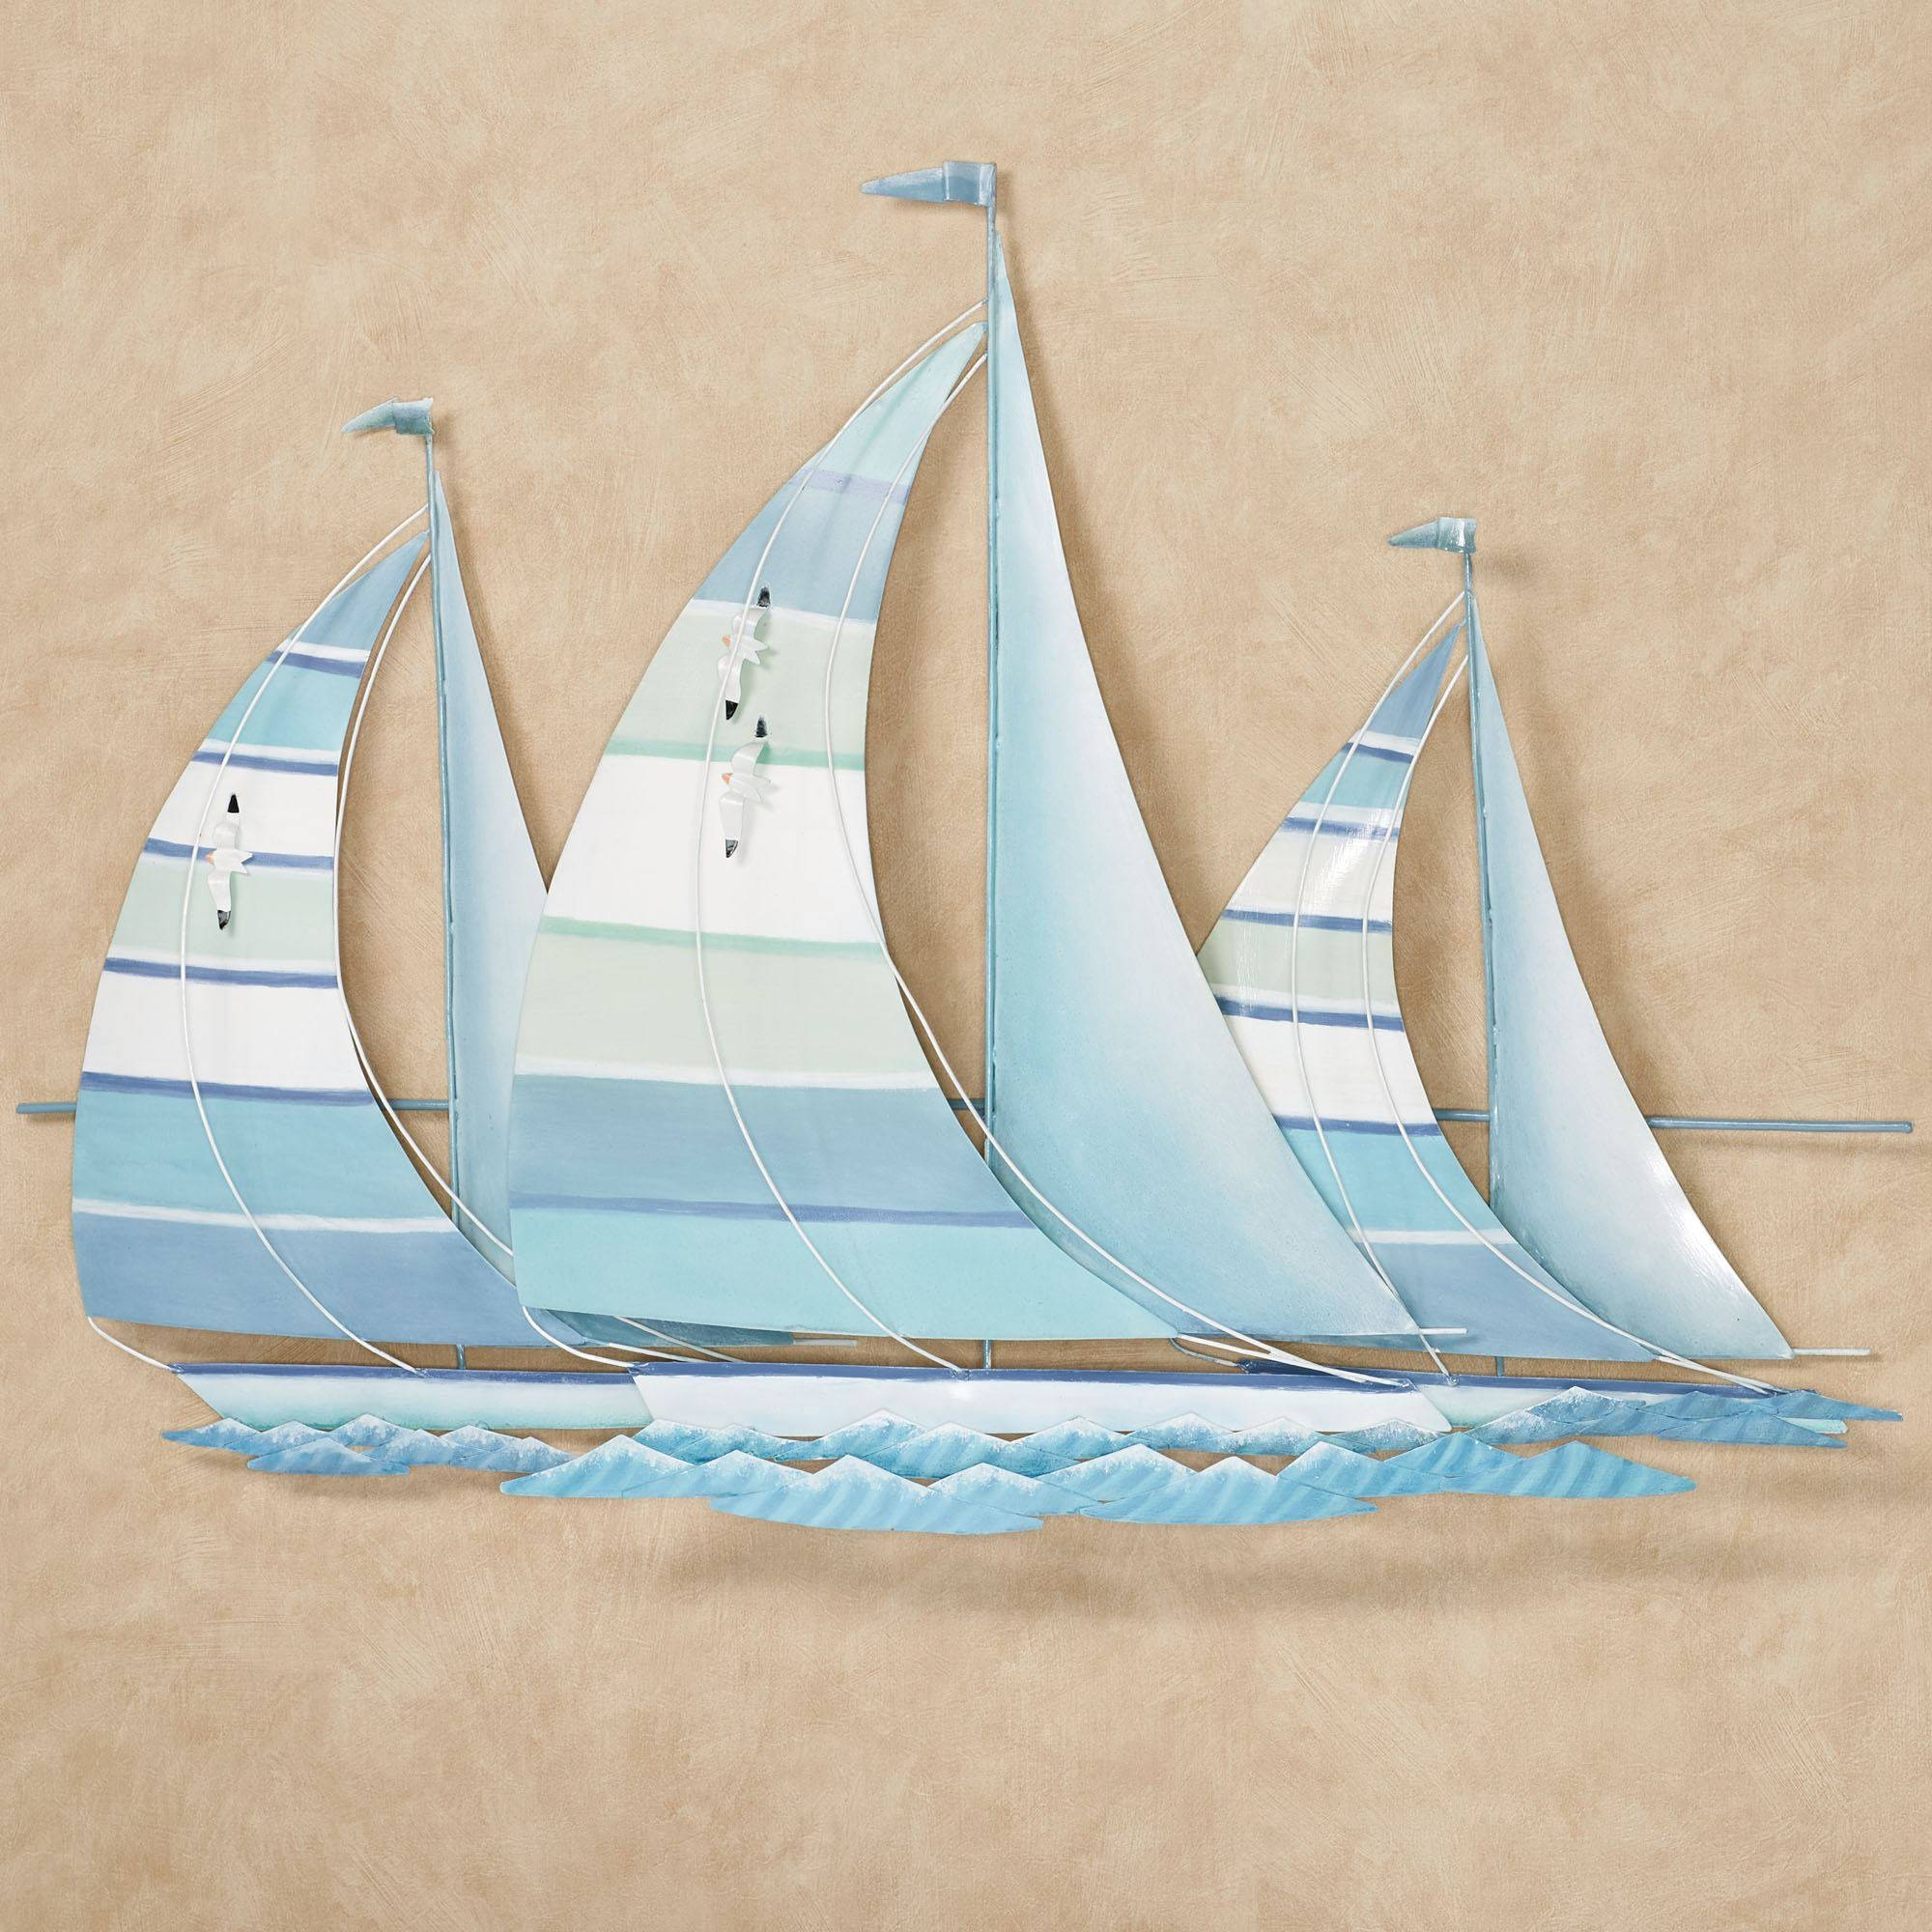 Metal Wall Art Sculptures | Touch Of Class With Regard To 2017 Sailboat Metal Wall Art (View 10 of 30)